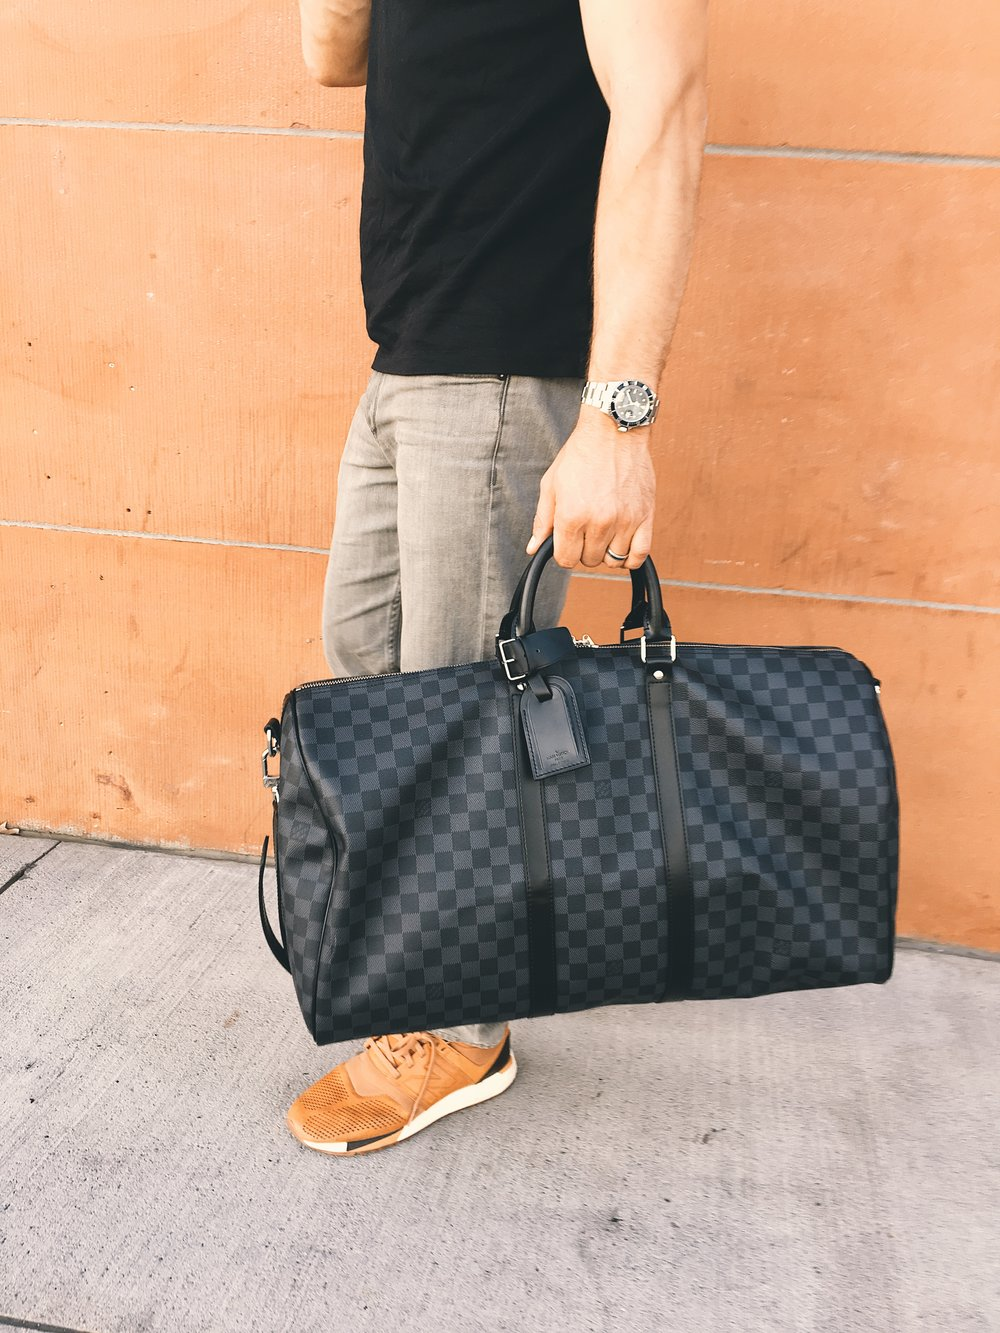 f43ad86324b Louis Vuitton Keepall Bandouliere 55 in Damier Graphite — Fellow Gent